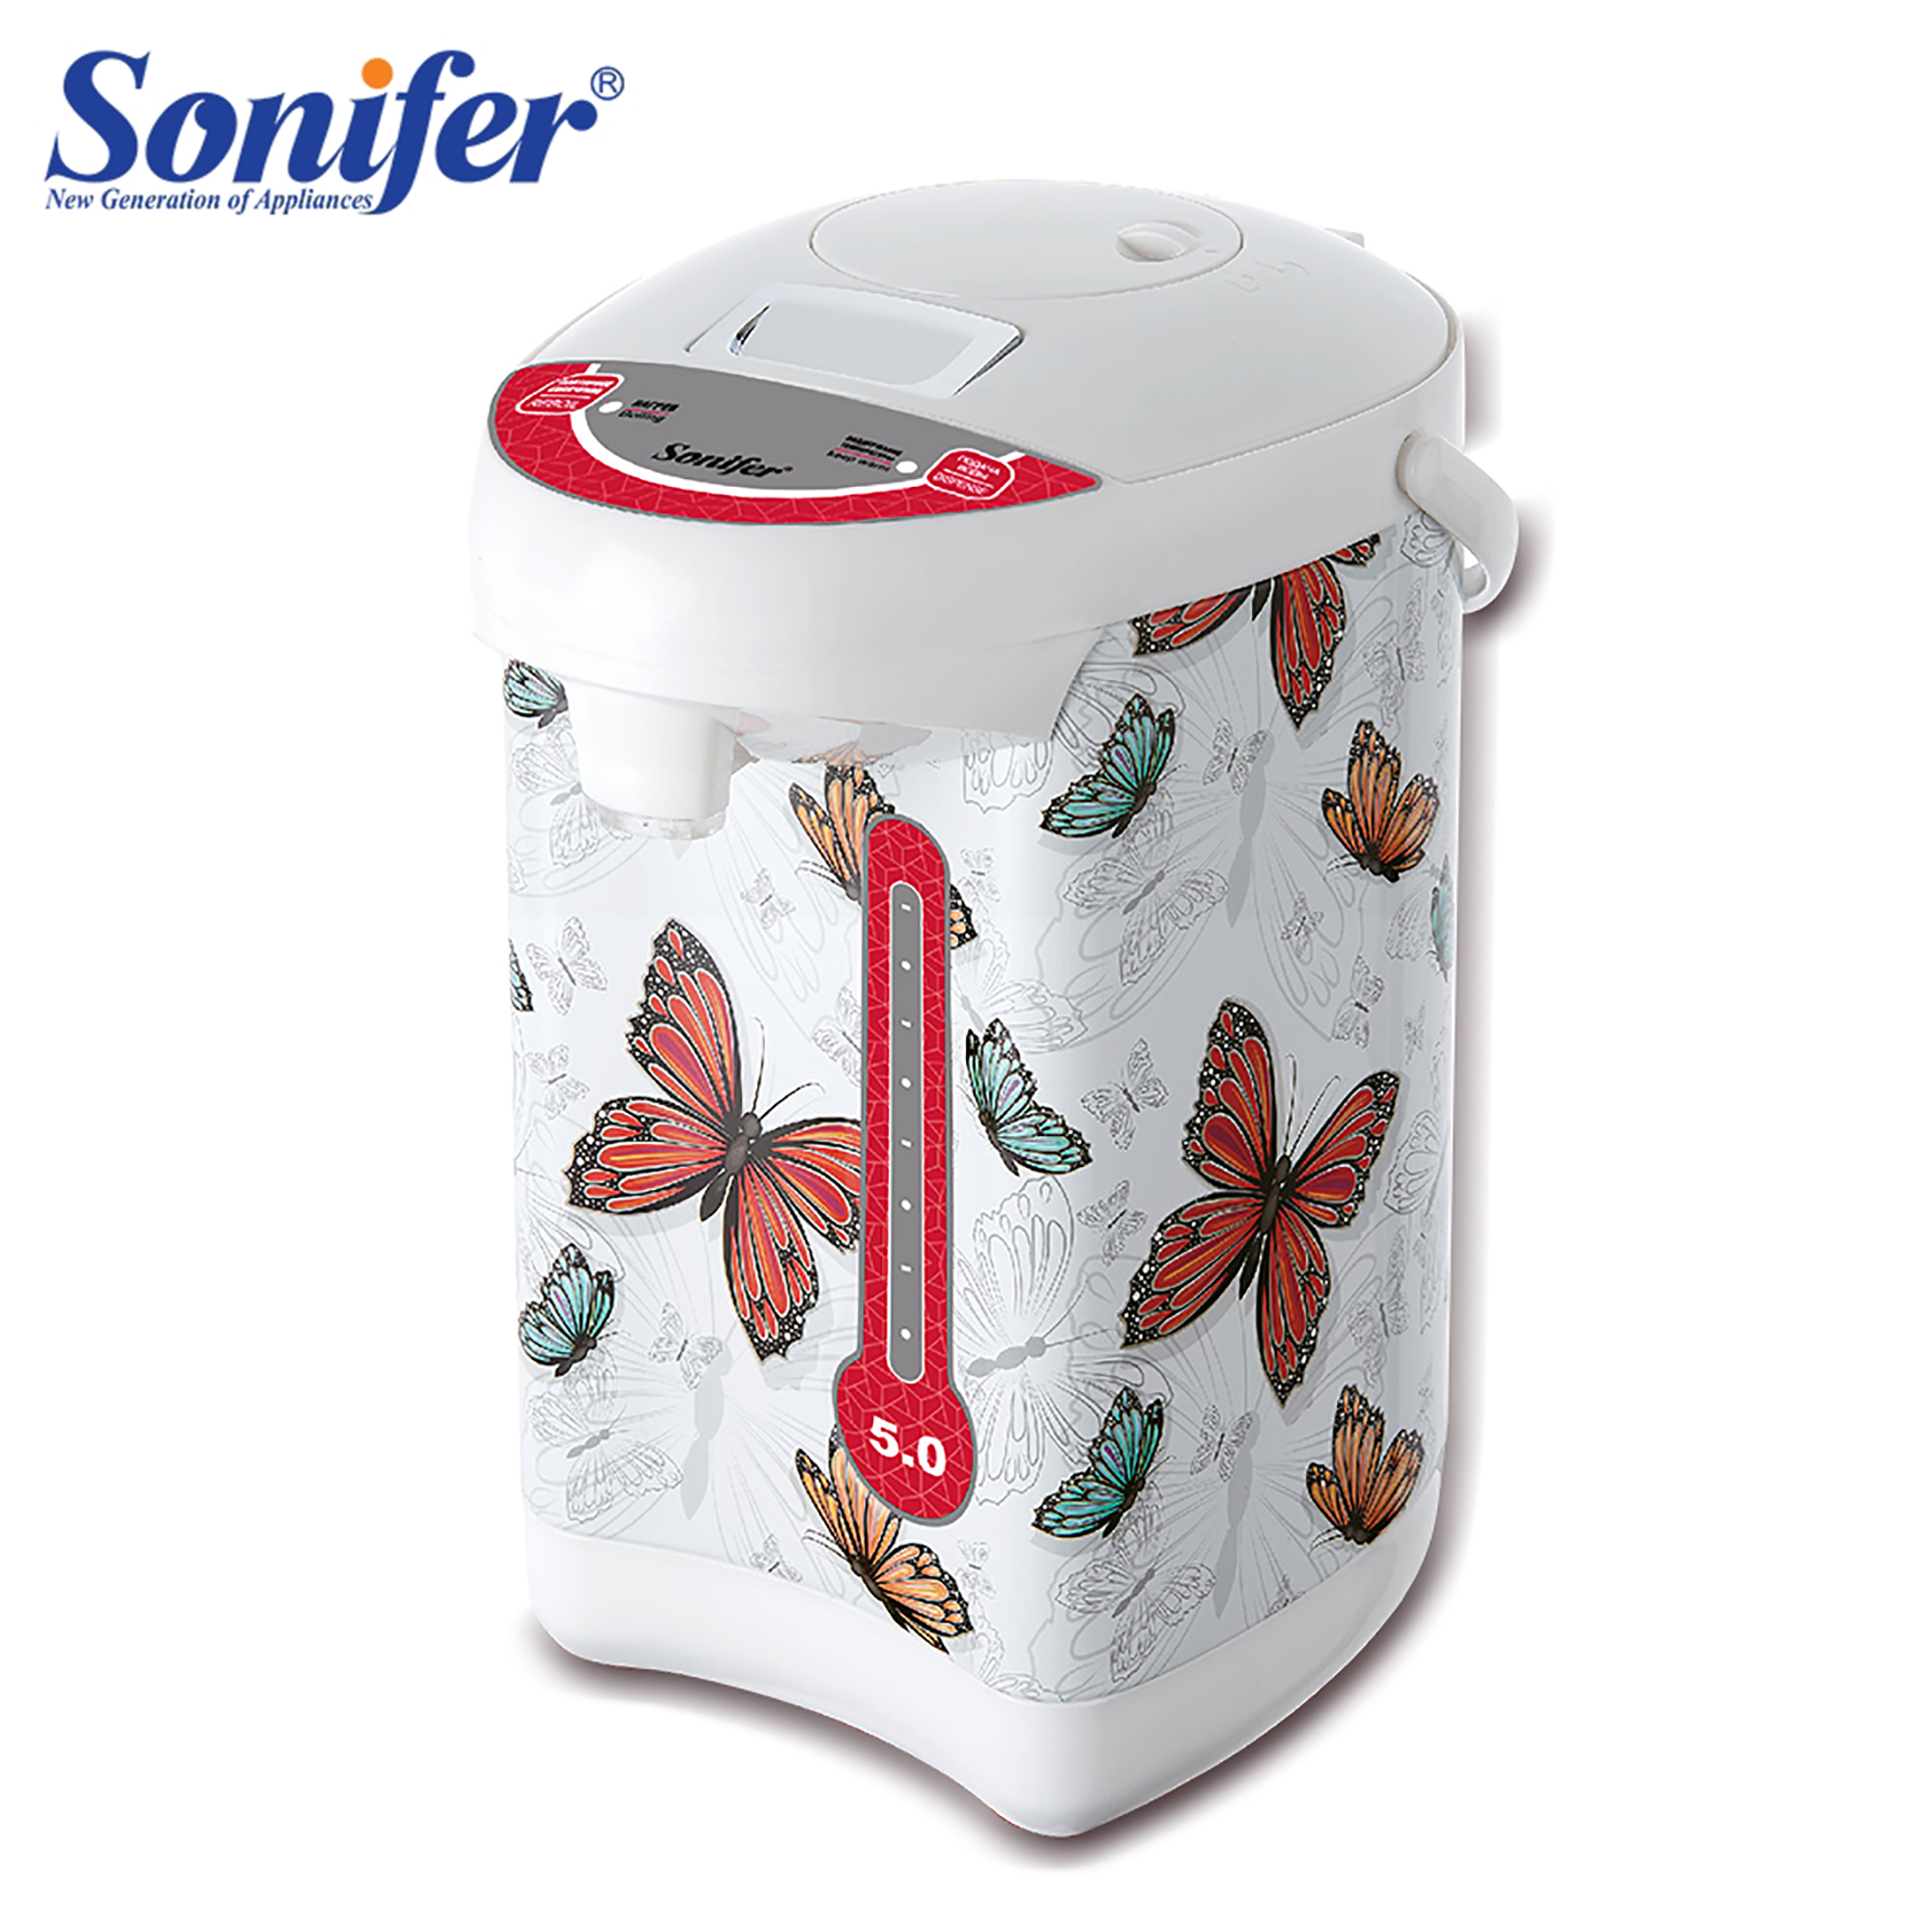 Electric Air Pots Thermos 5L Electric Kettle Big Capacity Temperature Control Automatic Heat Preservation Boiler SoniferElectric Air Pots Thermos 5L Electric Kettle Big Capacity Temperature Control Automatic Heat Preservation Boiler Sonifer